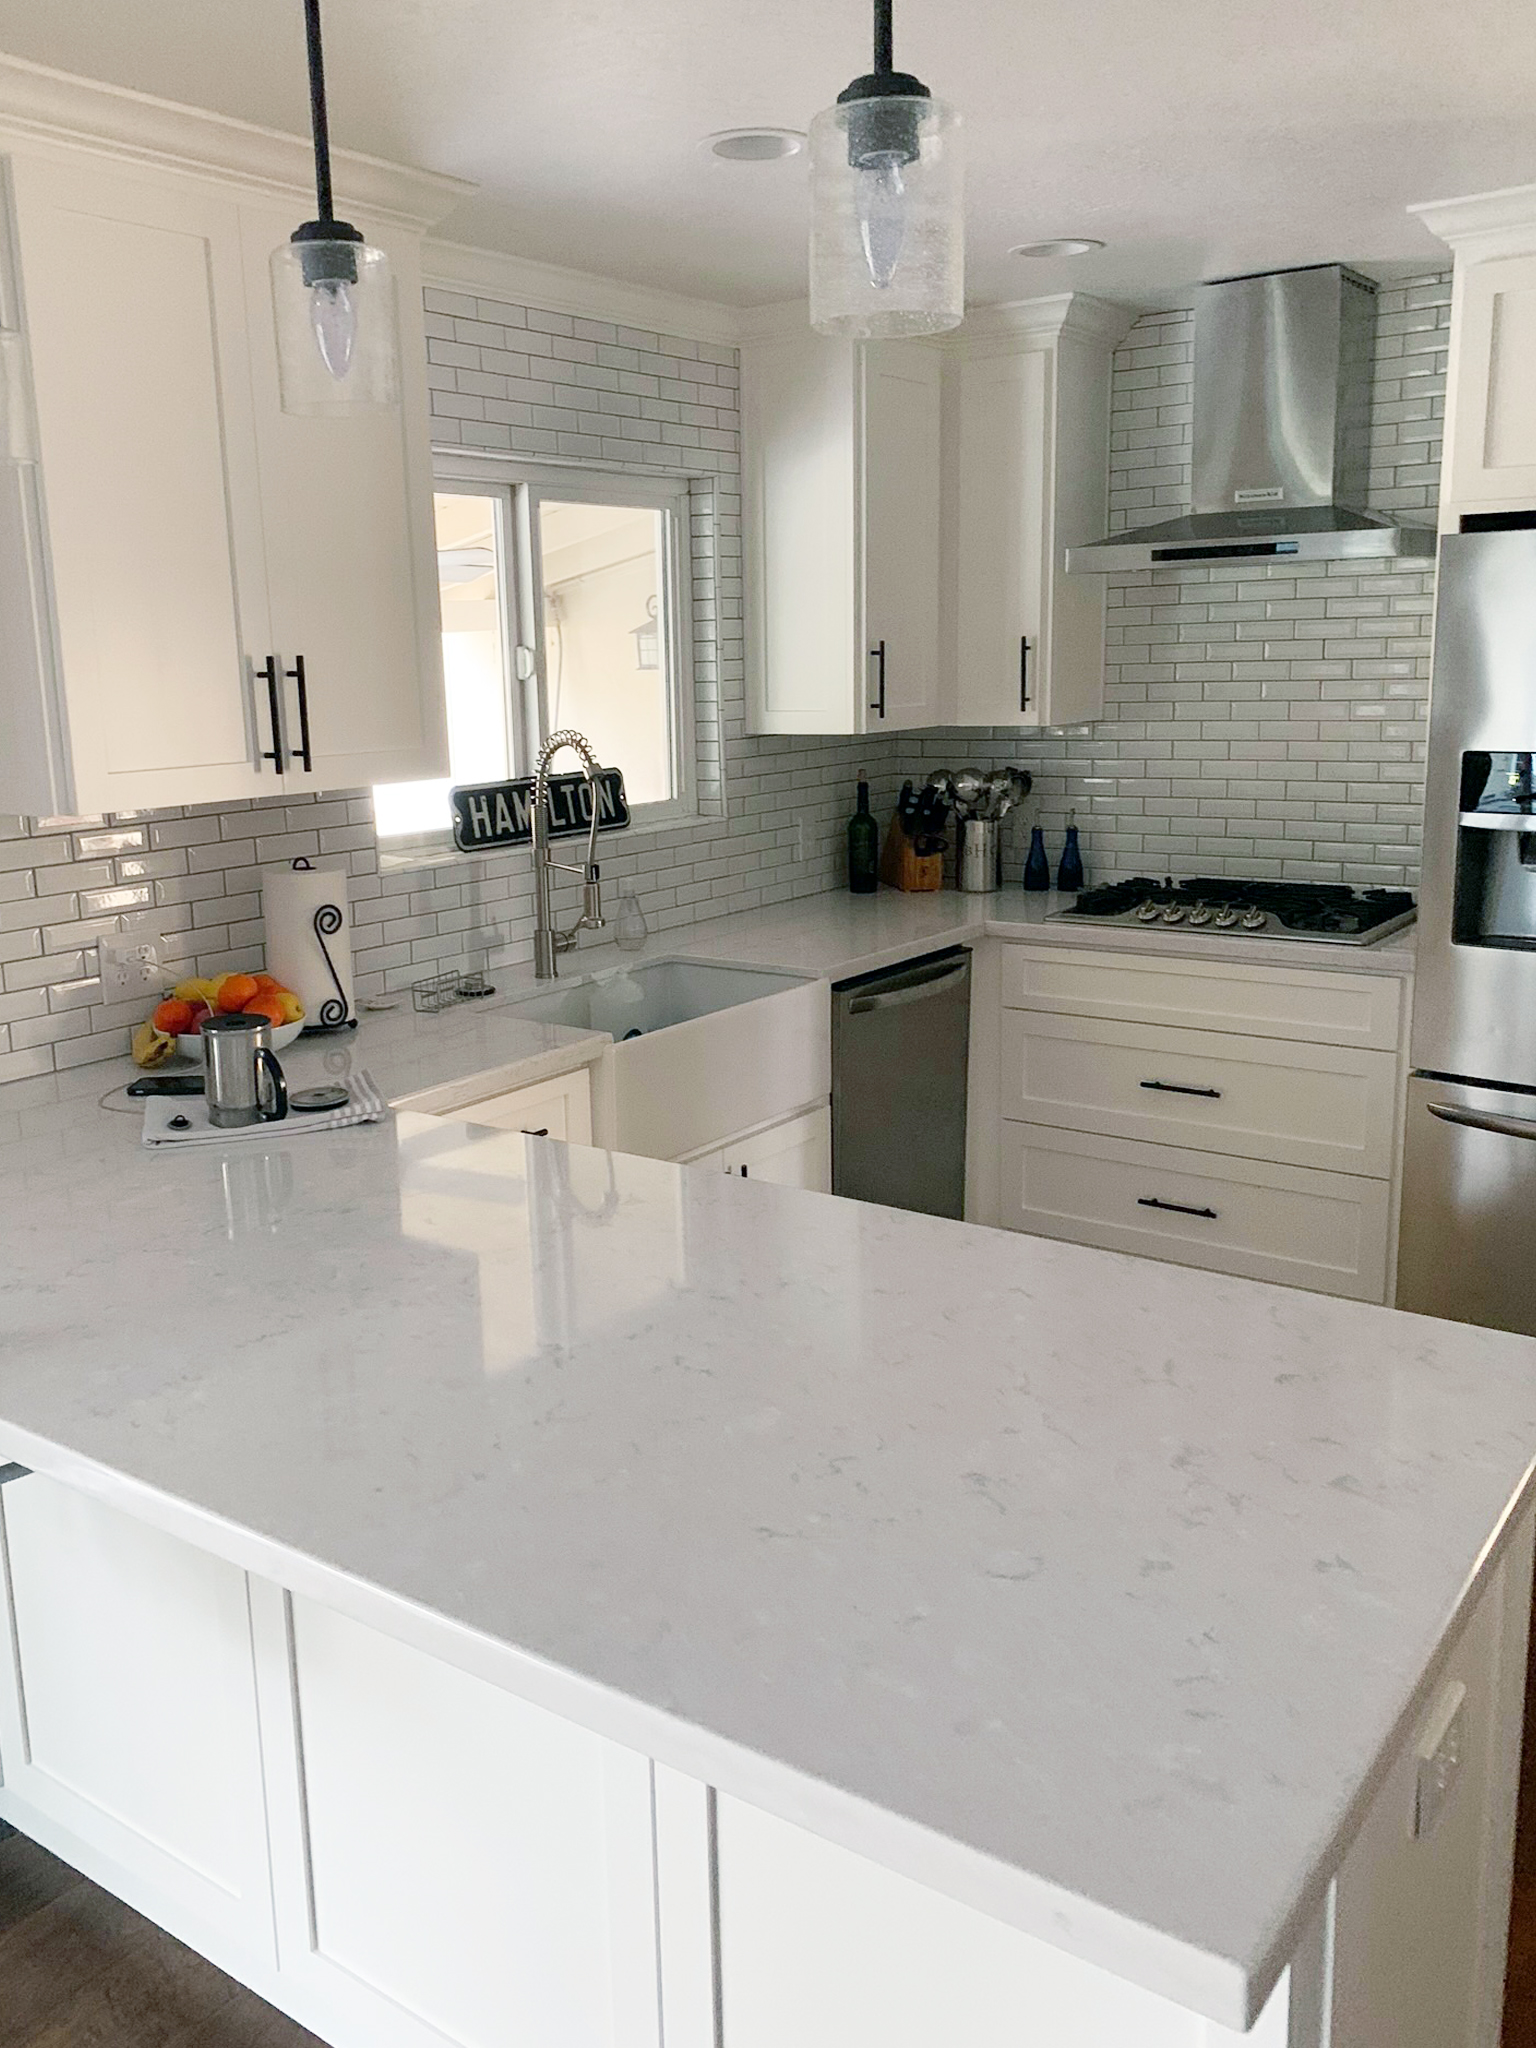 Kitchen remodel with white subway backsplash and white cabinets